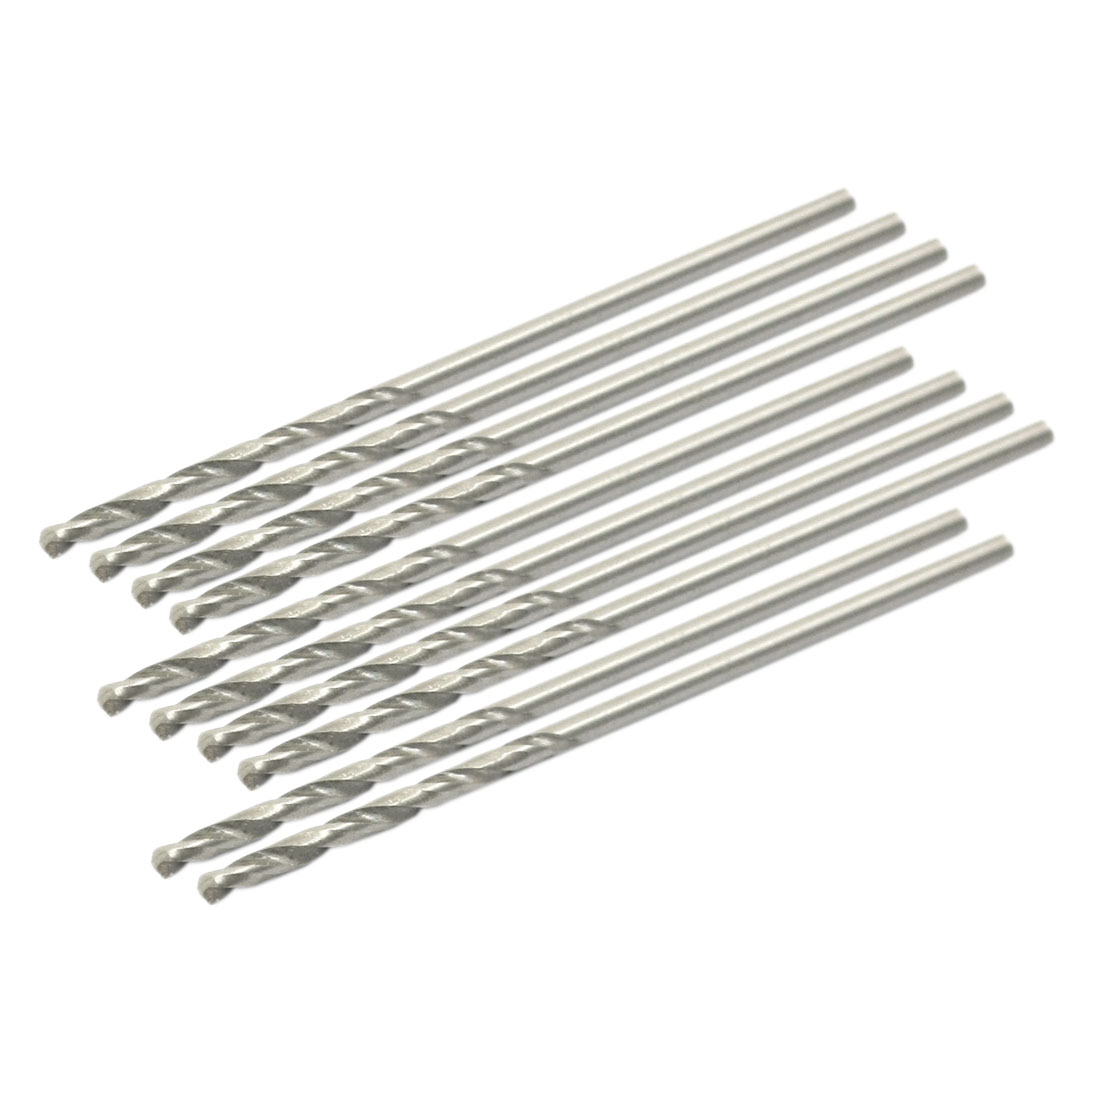 High Speed Steel 1.15mm Dia Split Point 36mm Long Twist Drill Bits 10 Pcs